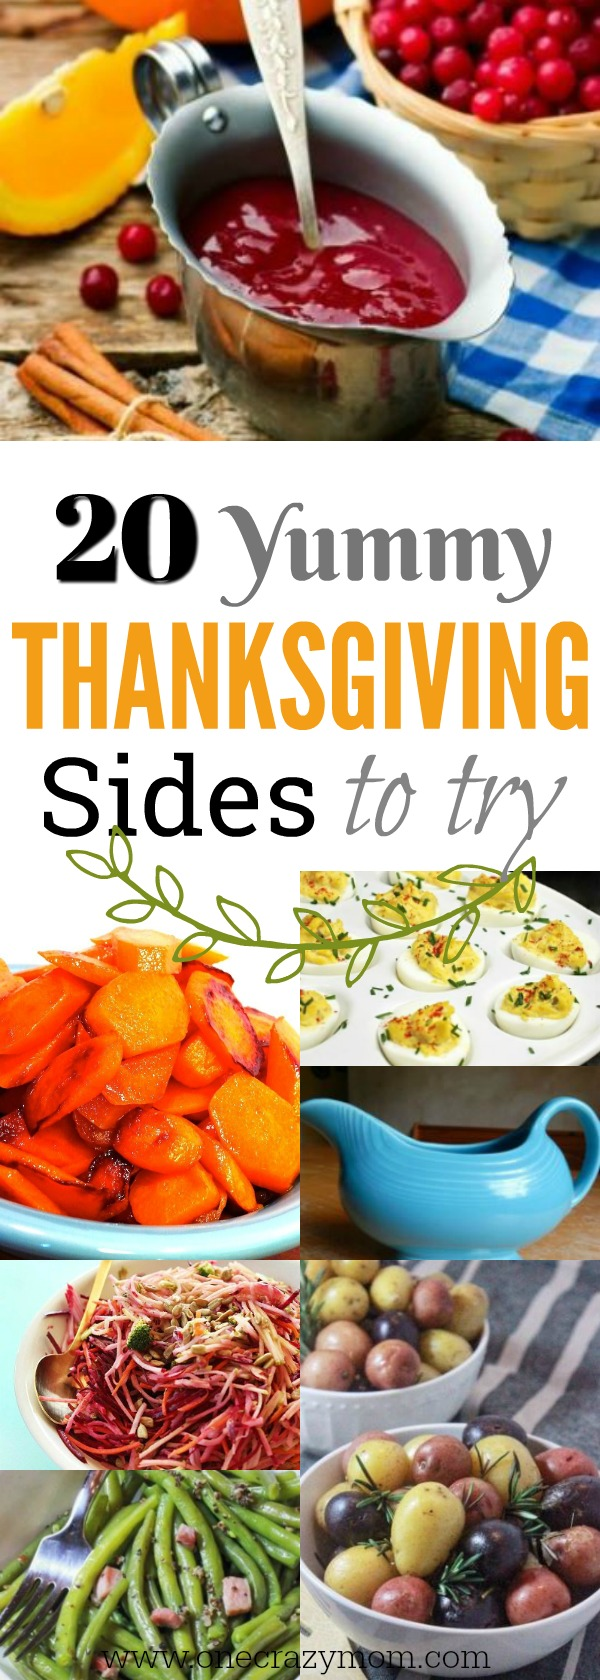 We have 20 Easy Thanksgiving Side Dishes sure to impress while being very simple to make! From old favorites to new ideas, we have something for everyone.